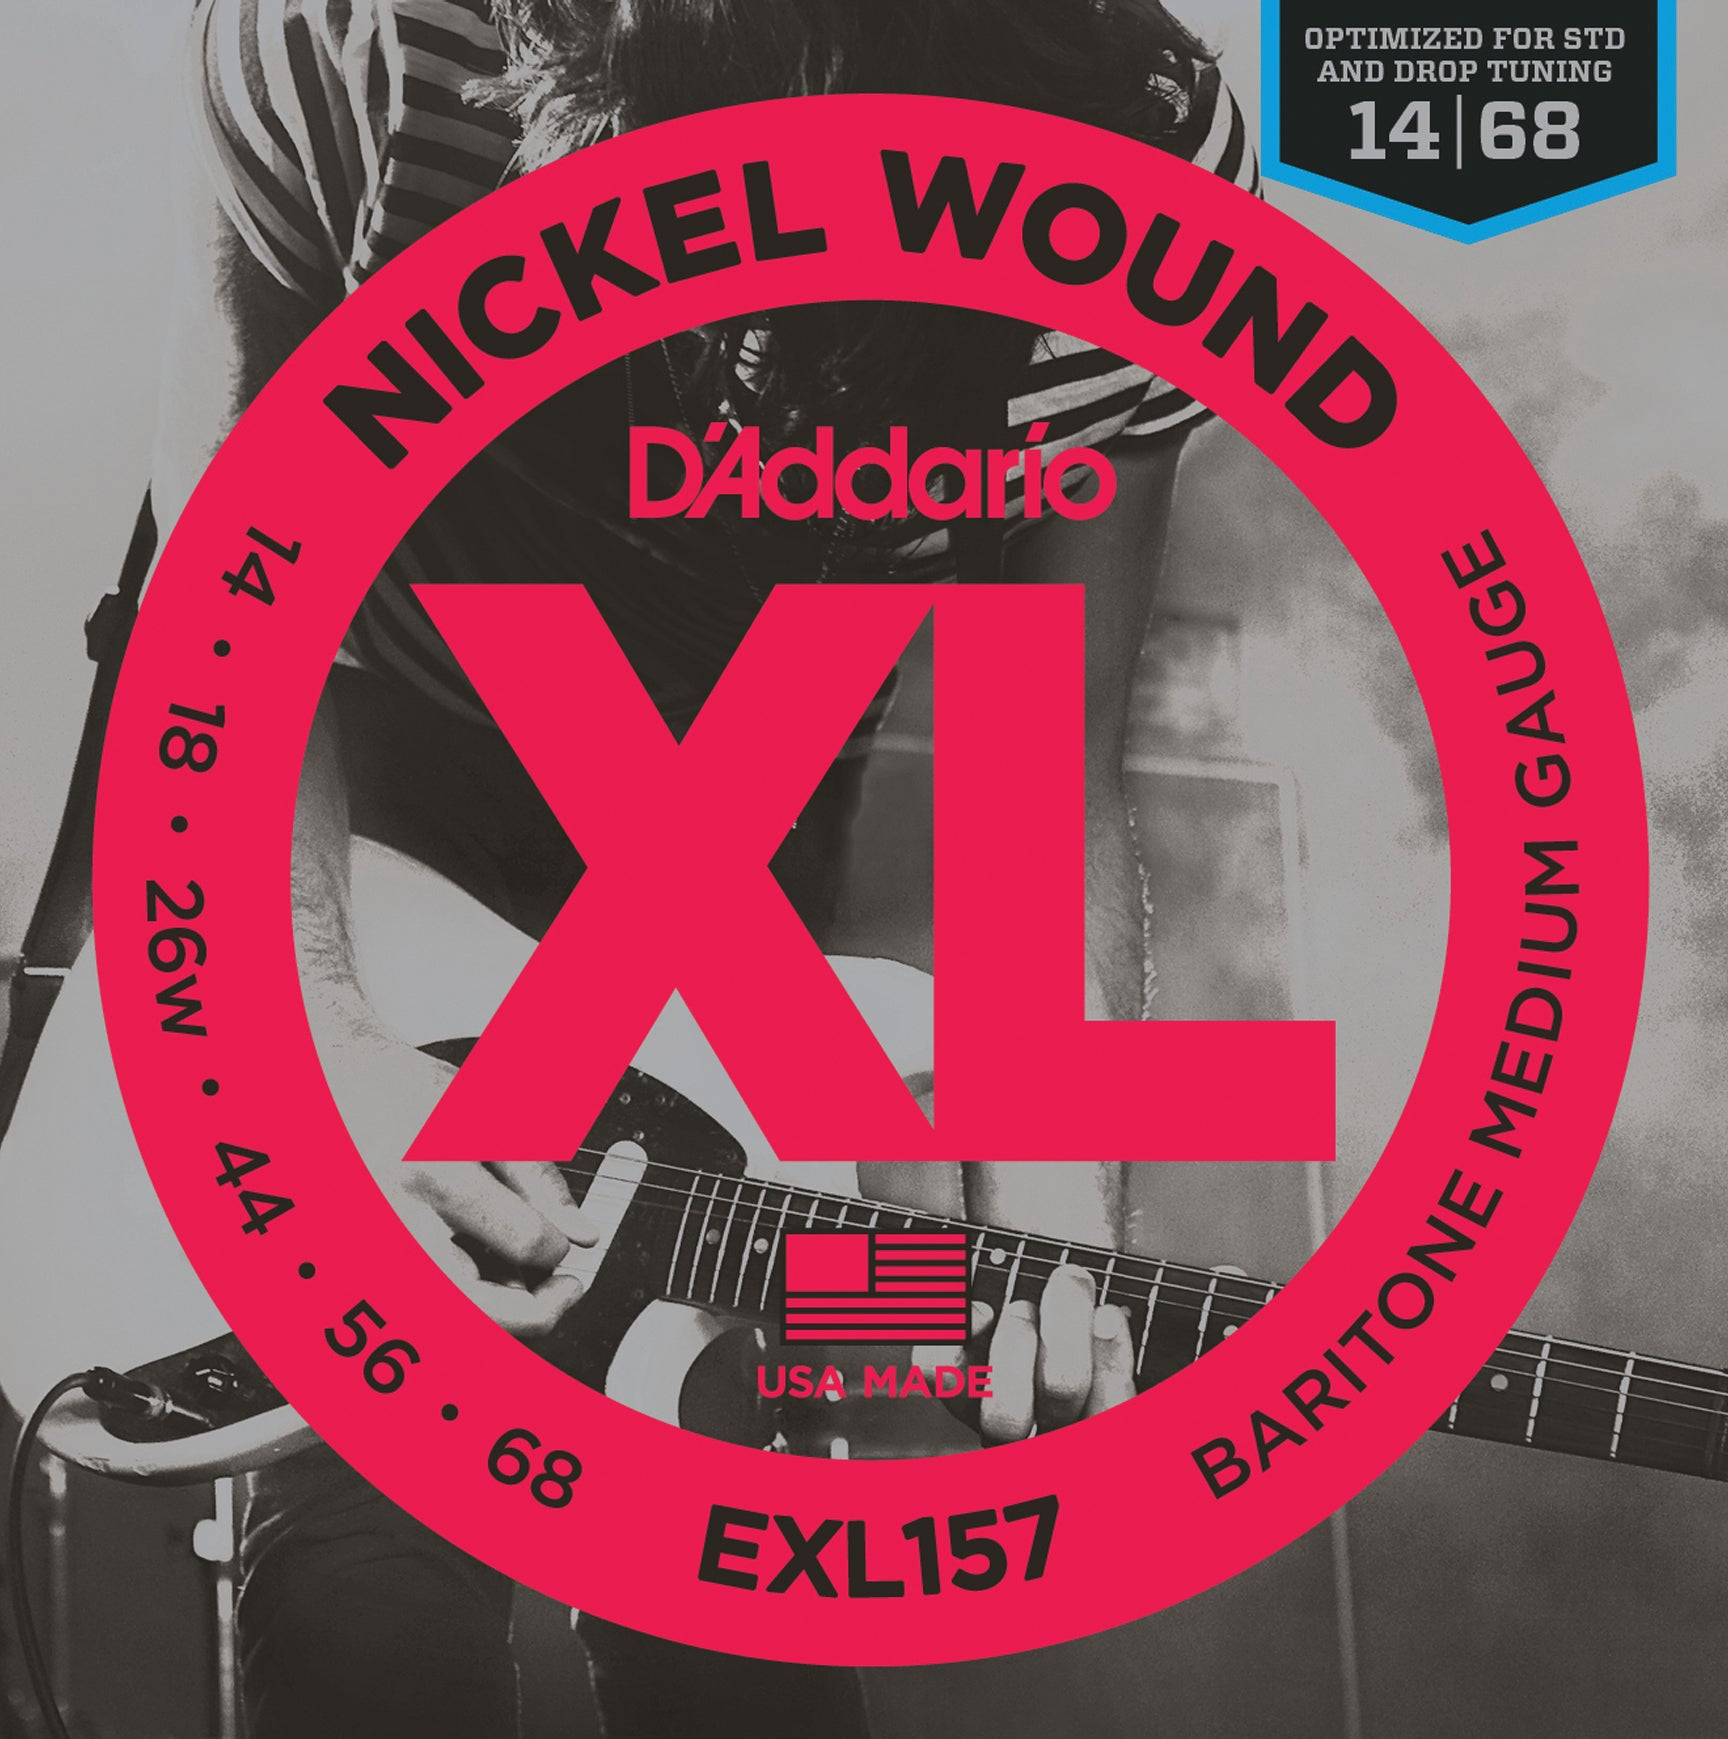 D'ADDARIO BARITONE ELECTRIC STRINGS 14-68